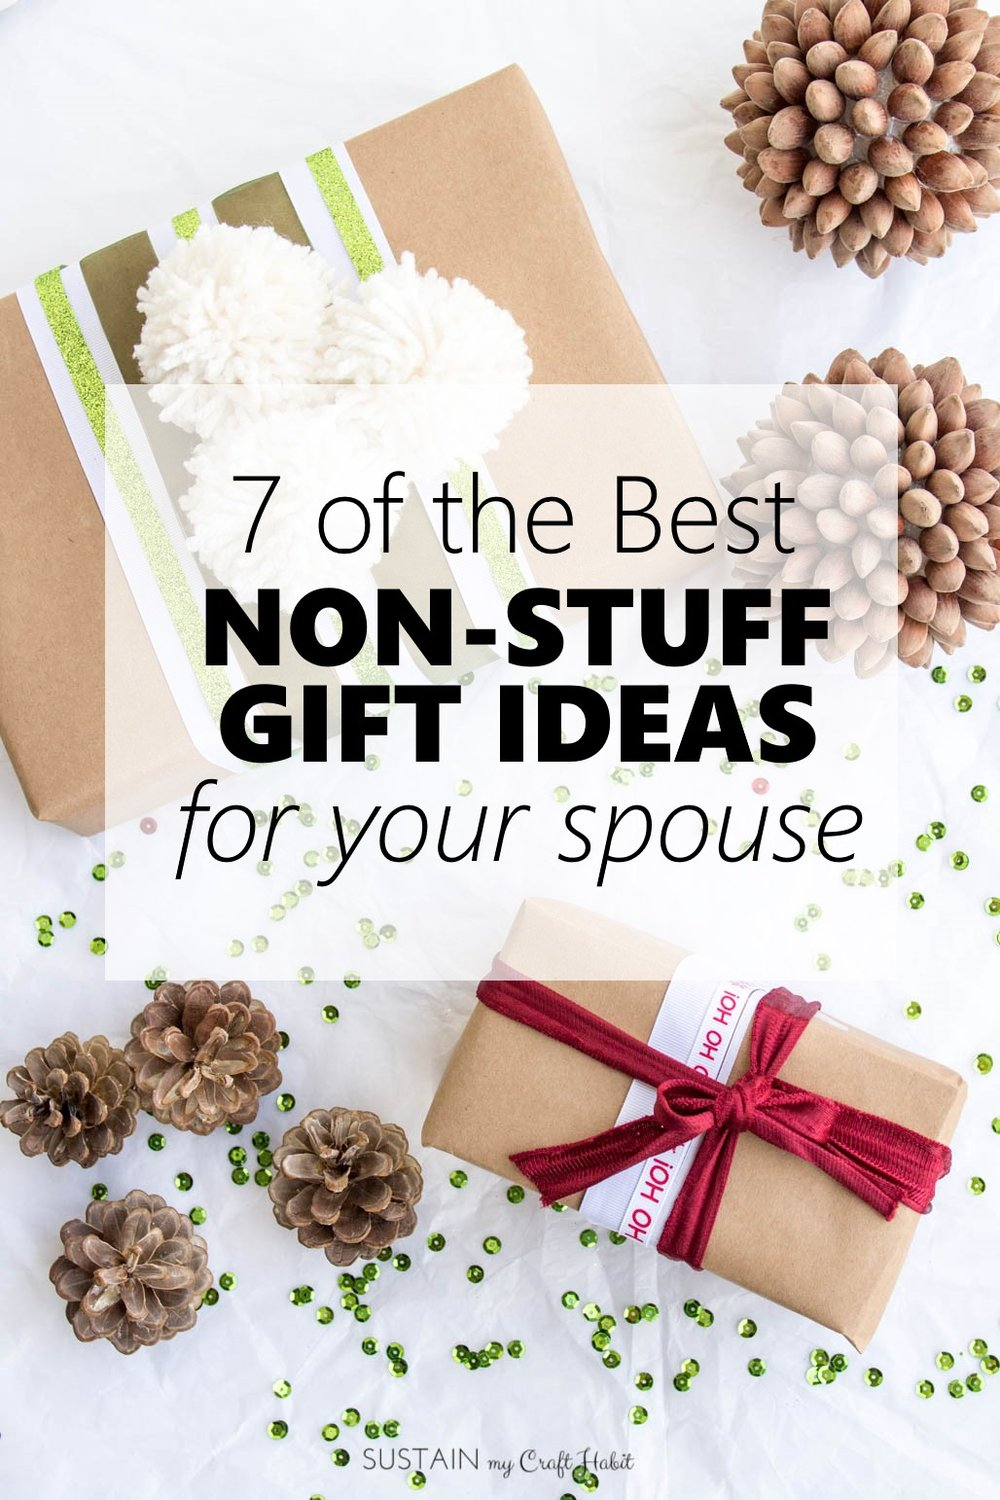 Best non-stuff gift ideas for your spouse | Throughtful gifts for husband or wife | Meaningful gifts for men and women | Christmas gift ideas for the family